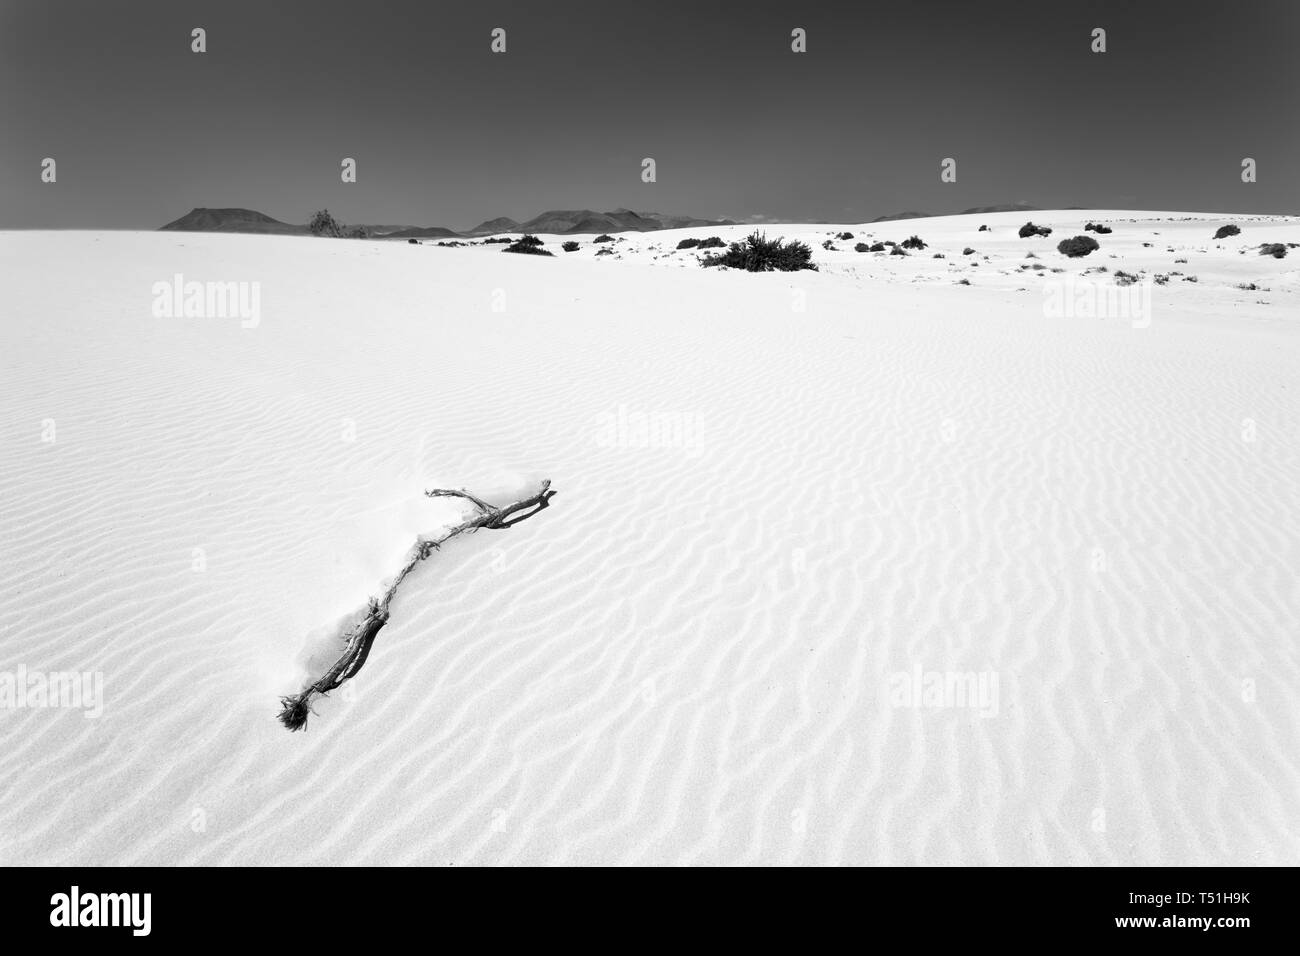 A twig in the sand dunes of Corralejo, Fuerteventura. - Stock Image